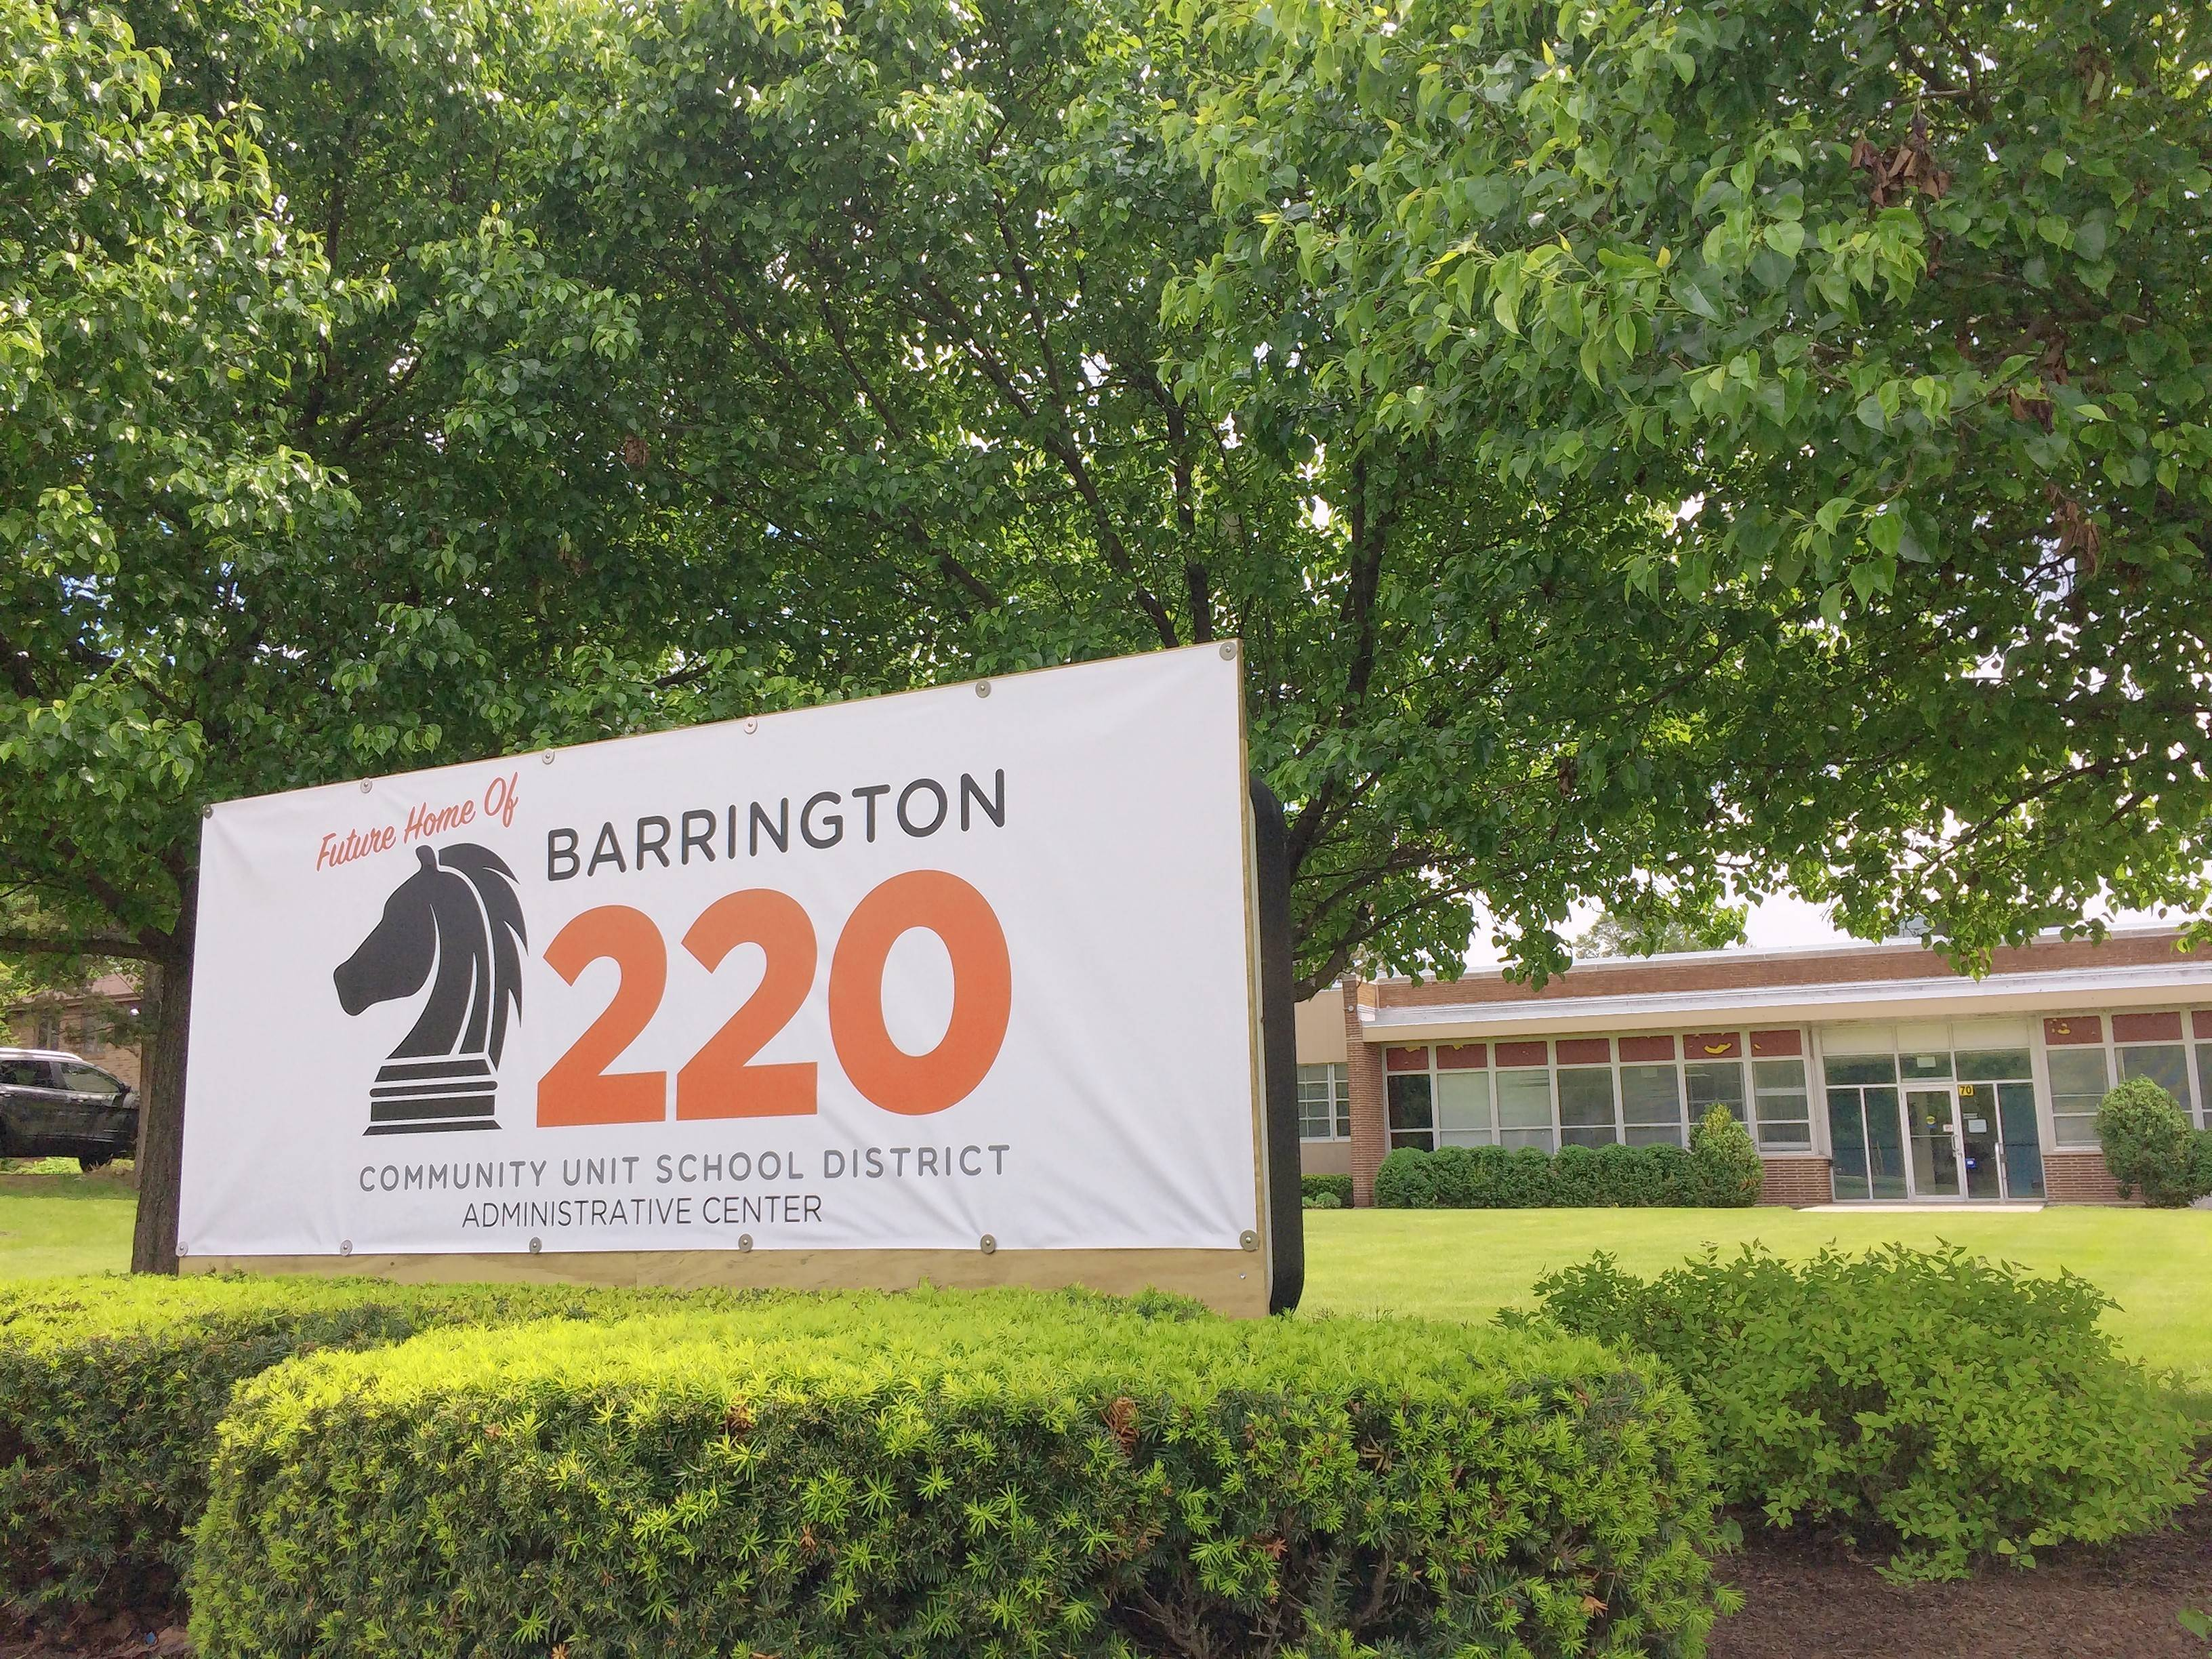 District 220 approves renovations for building to become new headquarters in Barrington